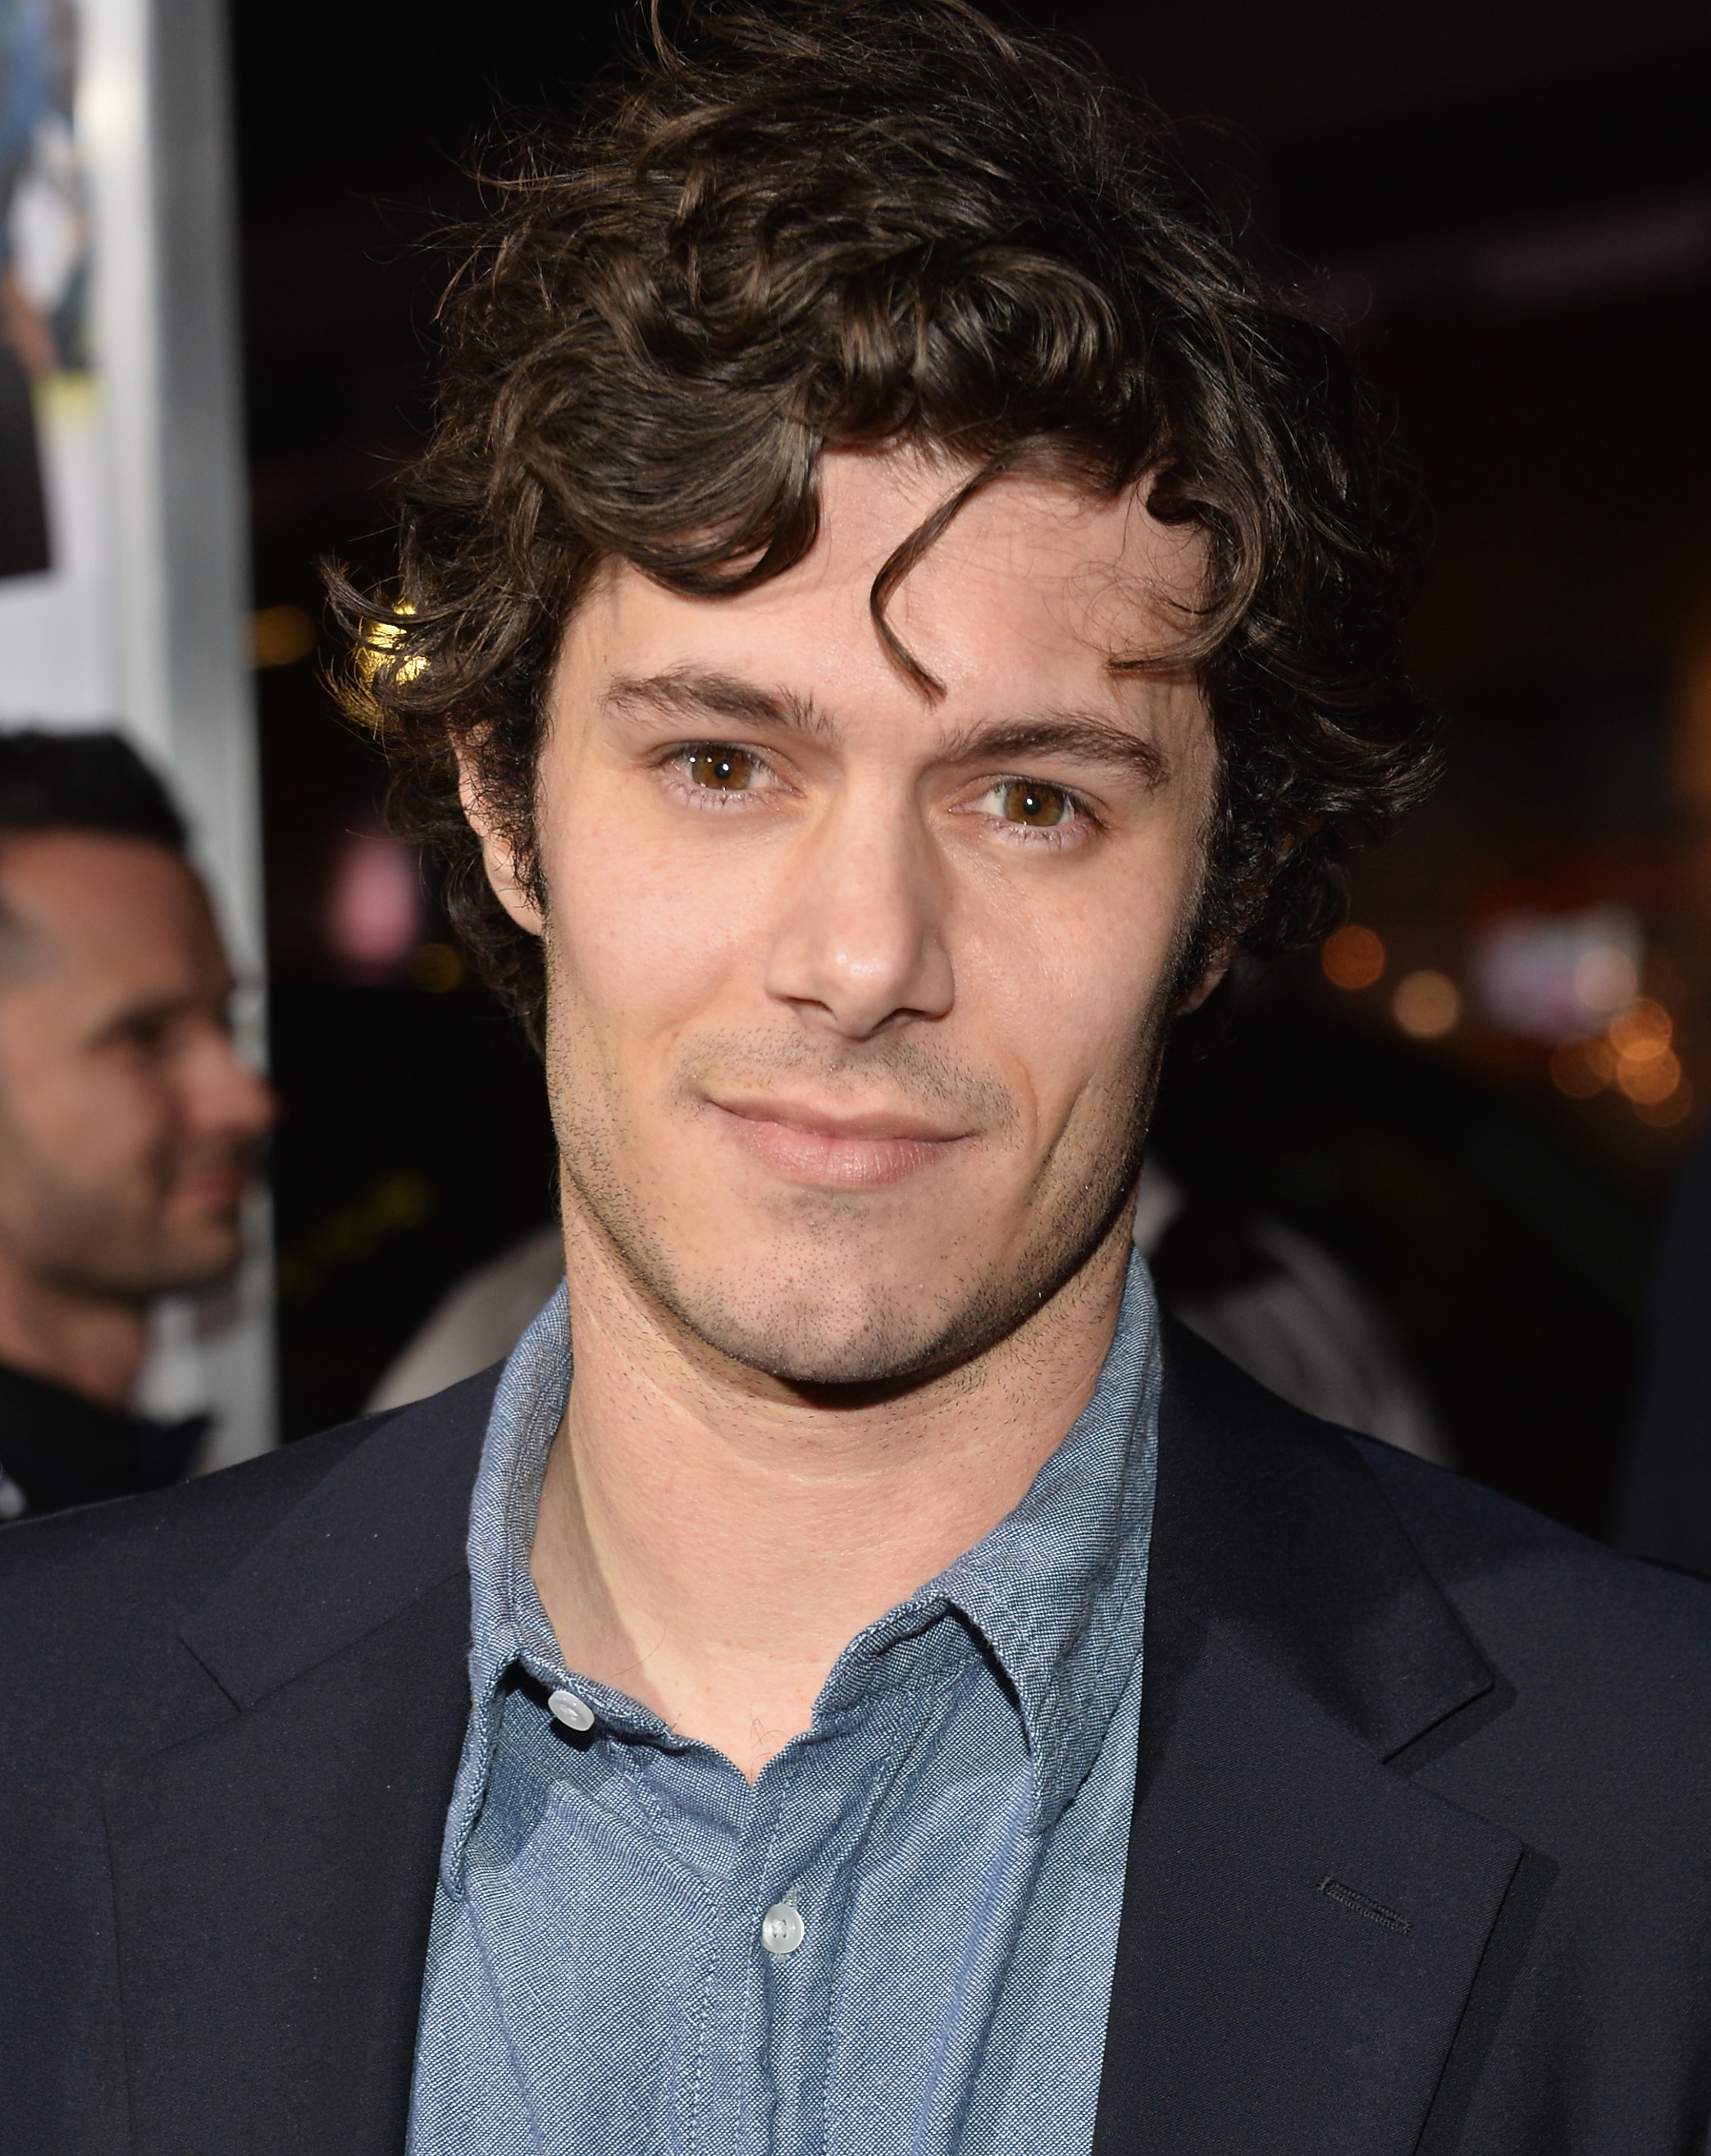 Actor Adam Brody attends the premiere of Fox Searchlight Pictures'  Baggage Claim  at Regal Cinemas L.A. Live on September 25, 2013 in Los Angeles, California.